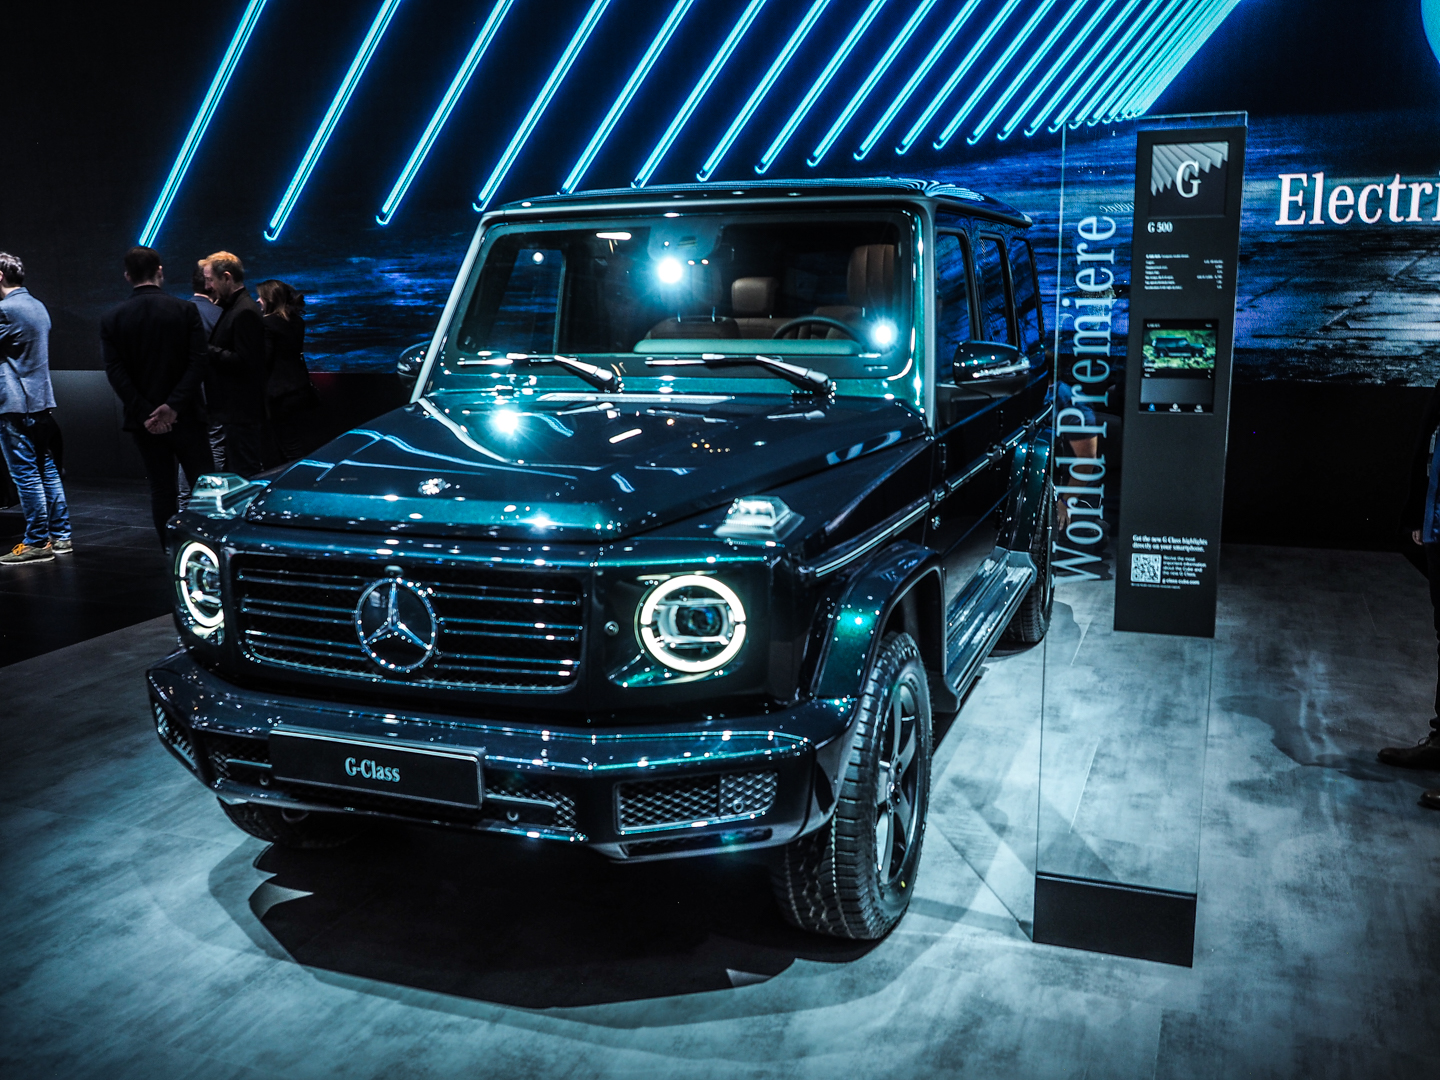 2018 Detroit Auto Show: The first new Mercedes-Benz G-Class